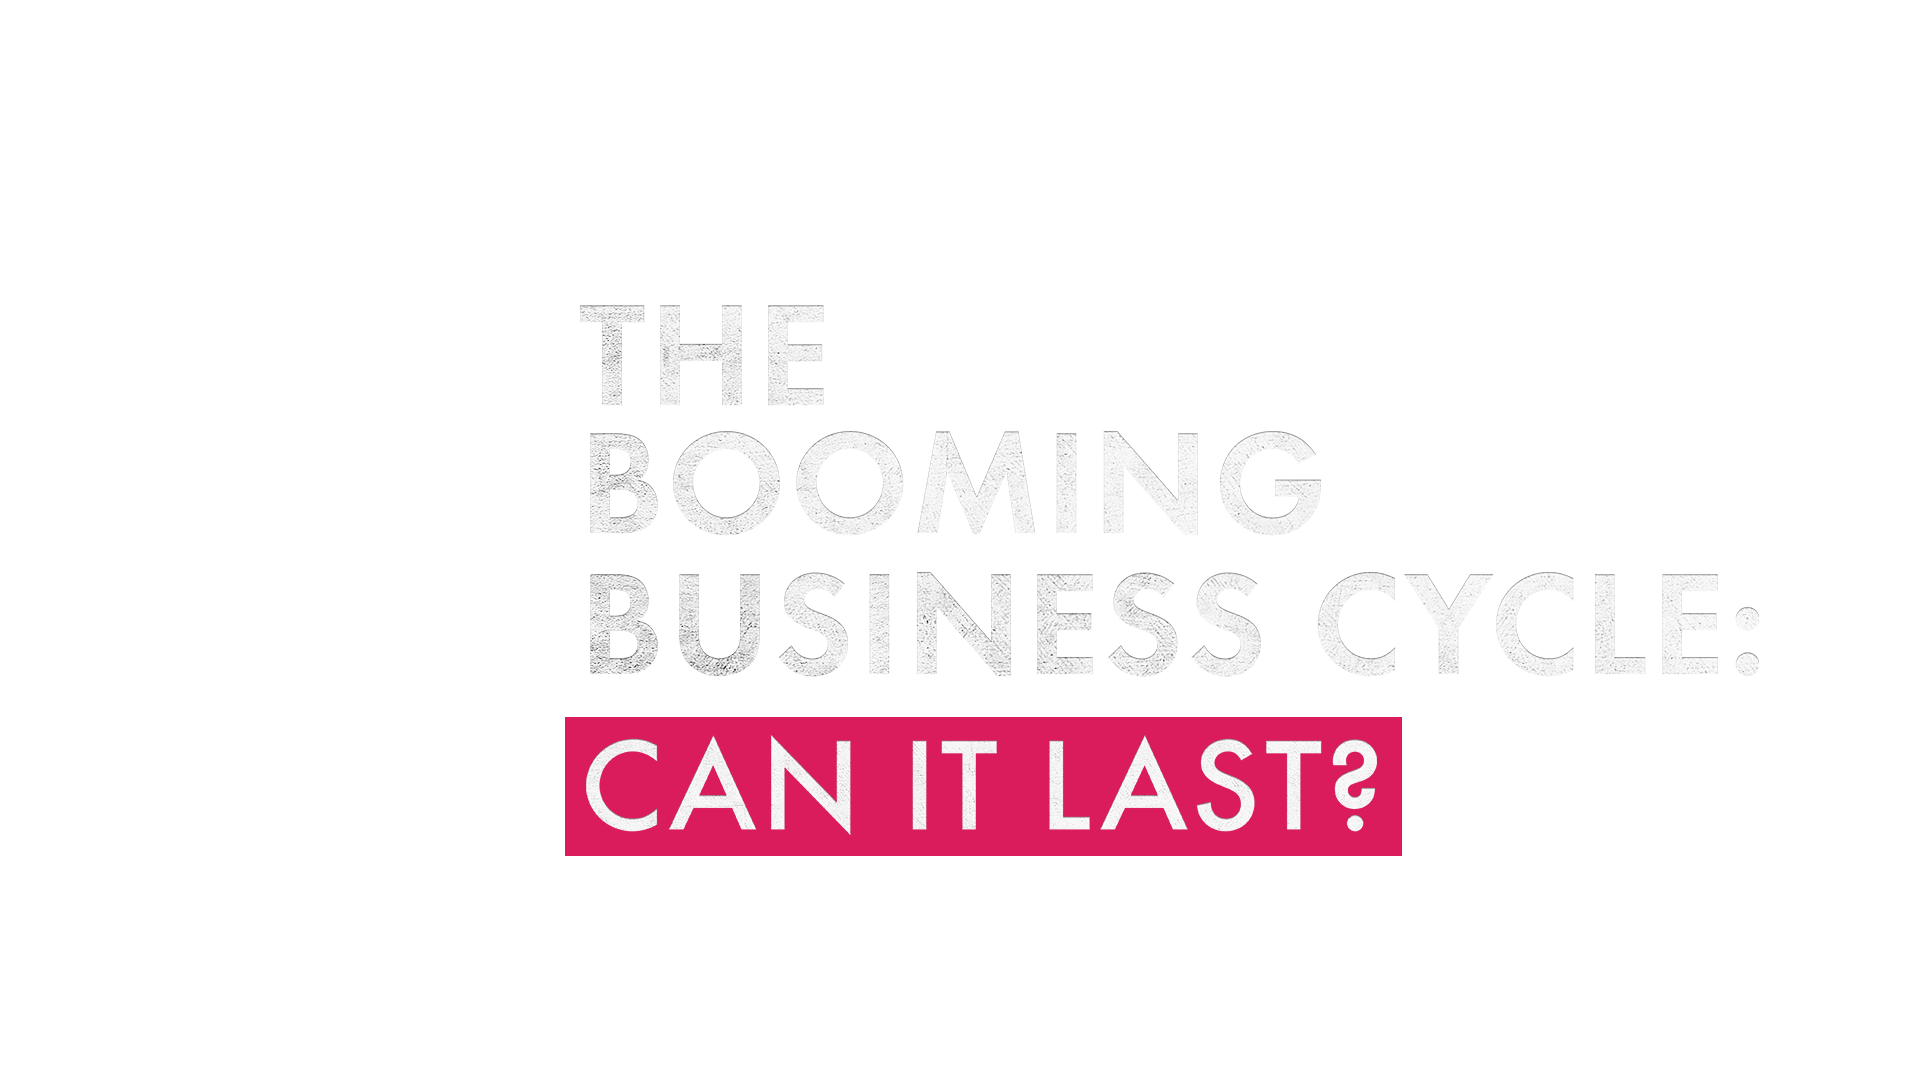 Can the booming business cycle last?